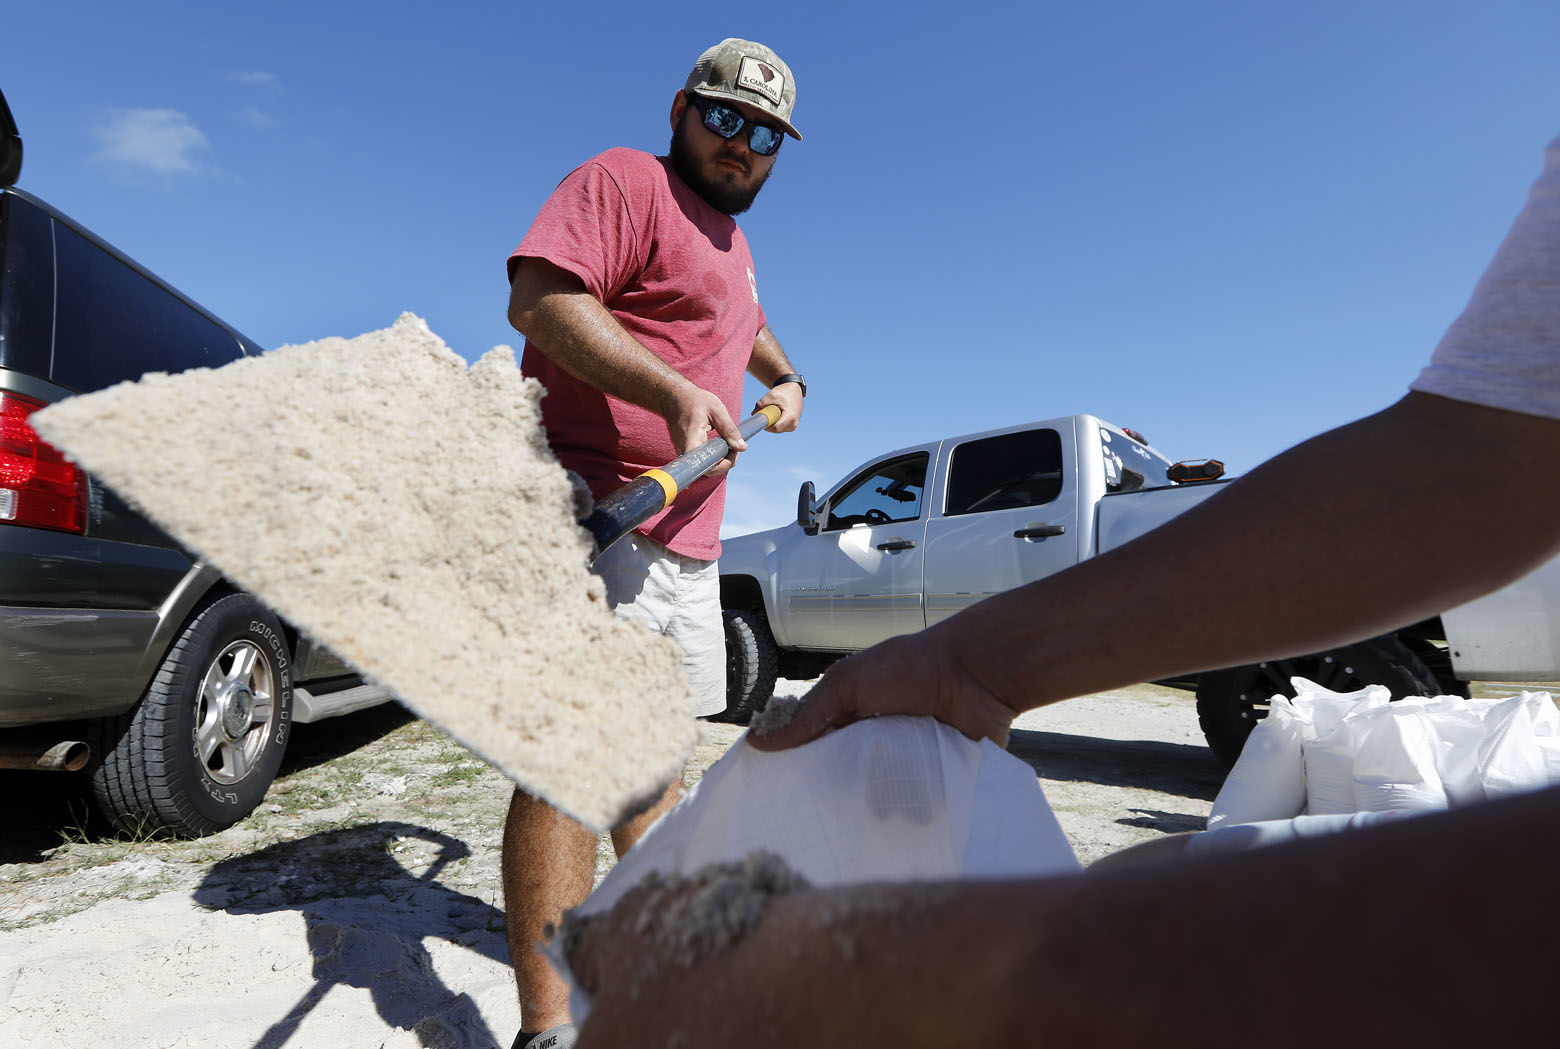 Walker Townsend, at left, from the Isle of Palms, S.C., fills a sand bag while Dalton Trout, at right, holds the bag at the Isle of Palms municipal lot where the city was giving away free sand in preparation for Hurricane Florence at the Isle of Palms S.C., Monday, Sept. 10, 2018. (AP Photo/Mic Smith)